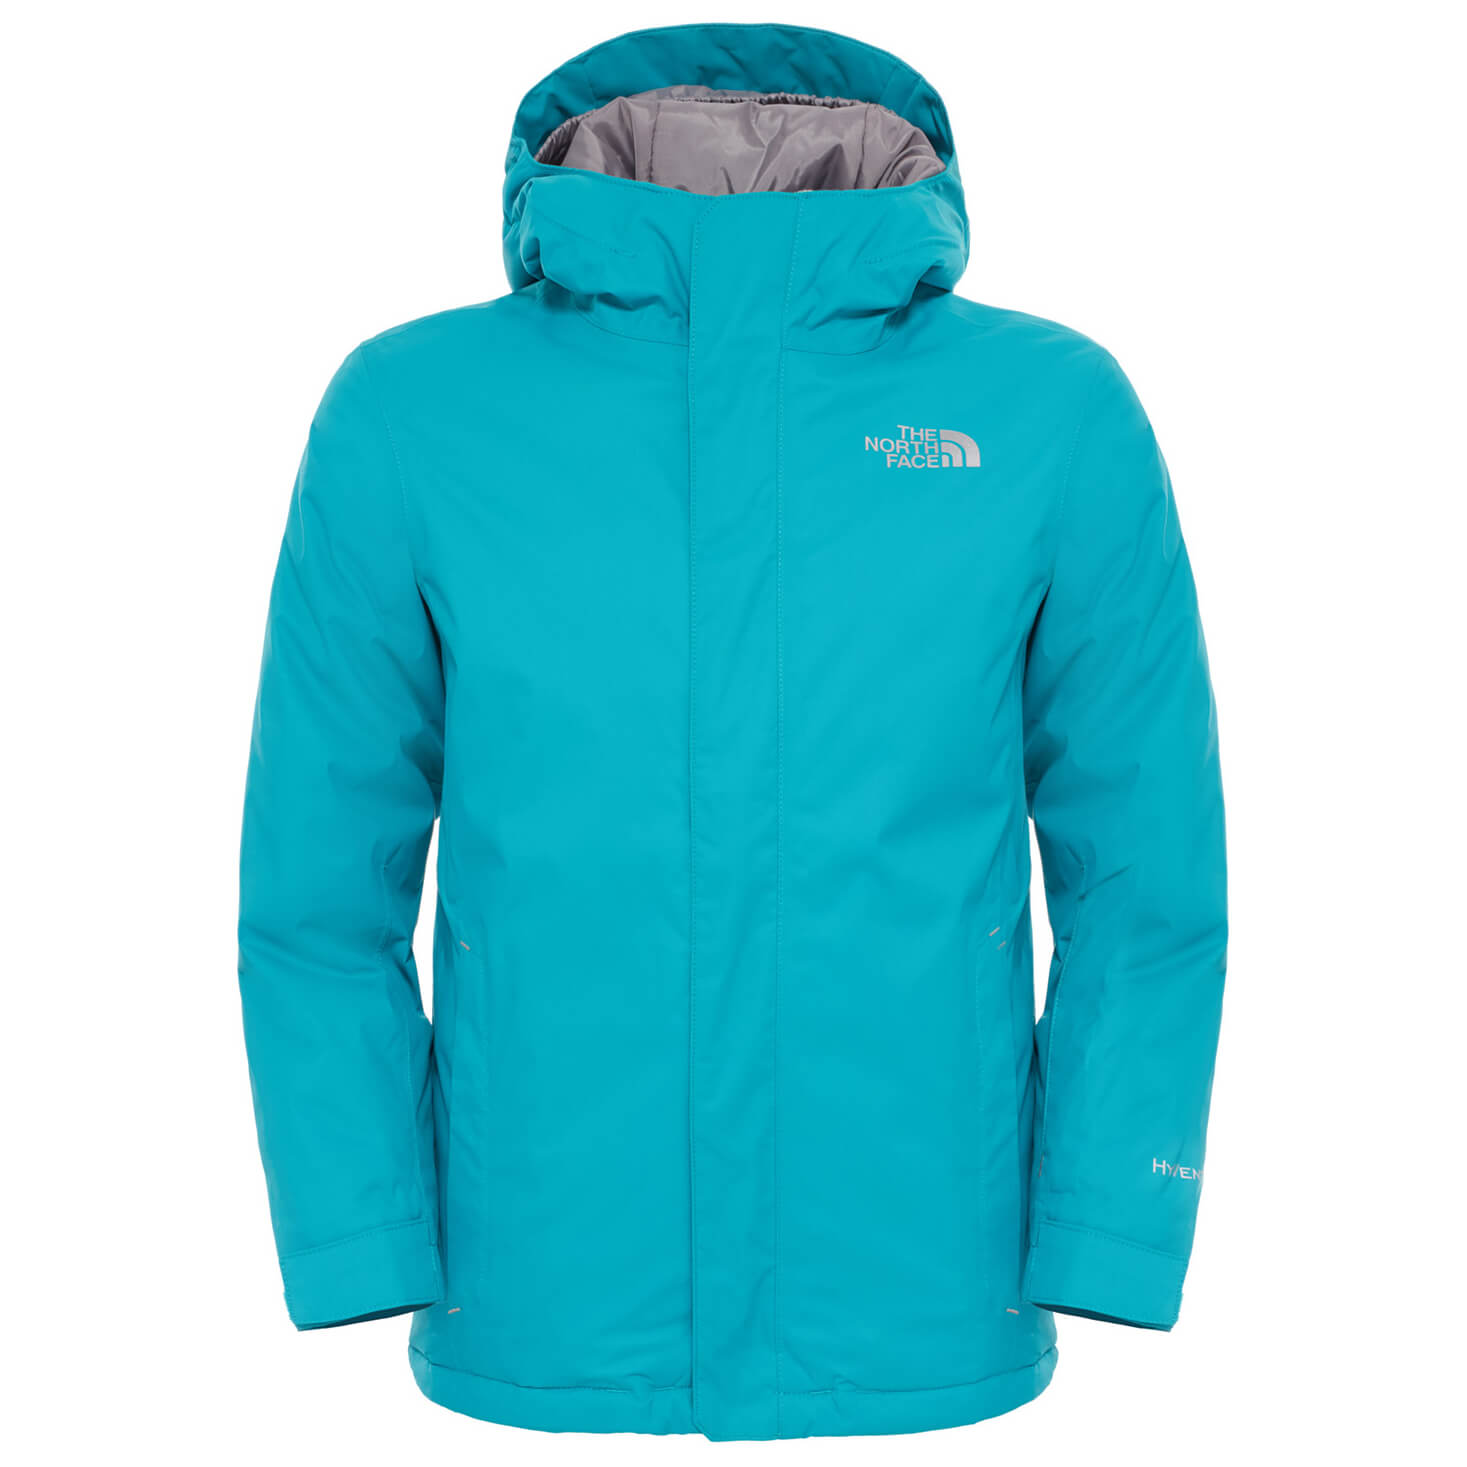 1603bfd73 The North Face Snow Quest Jacket - Ski jacket Kids